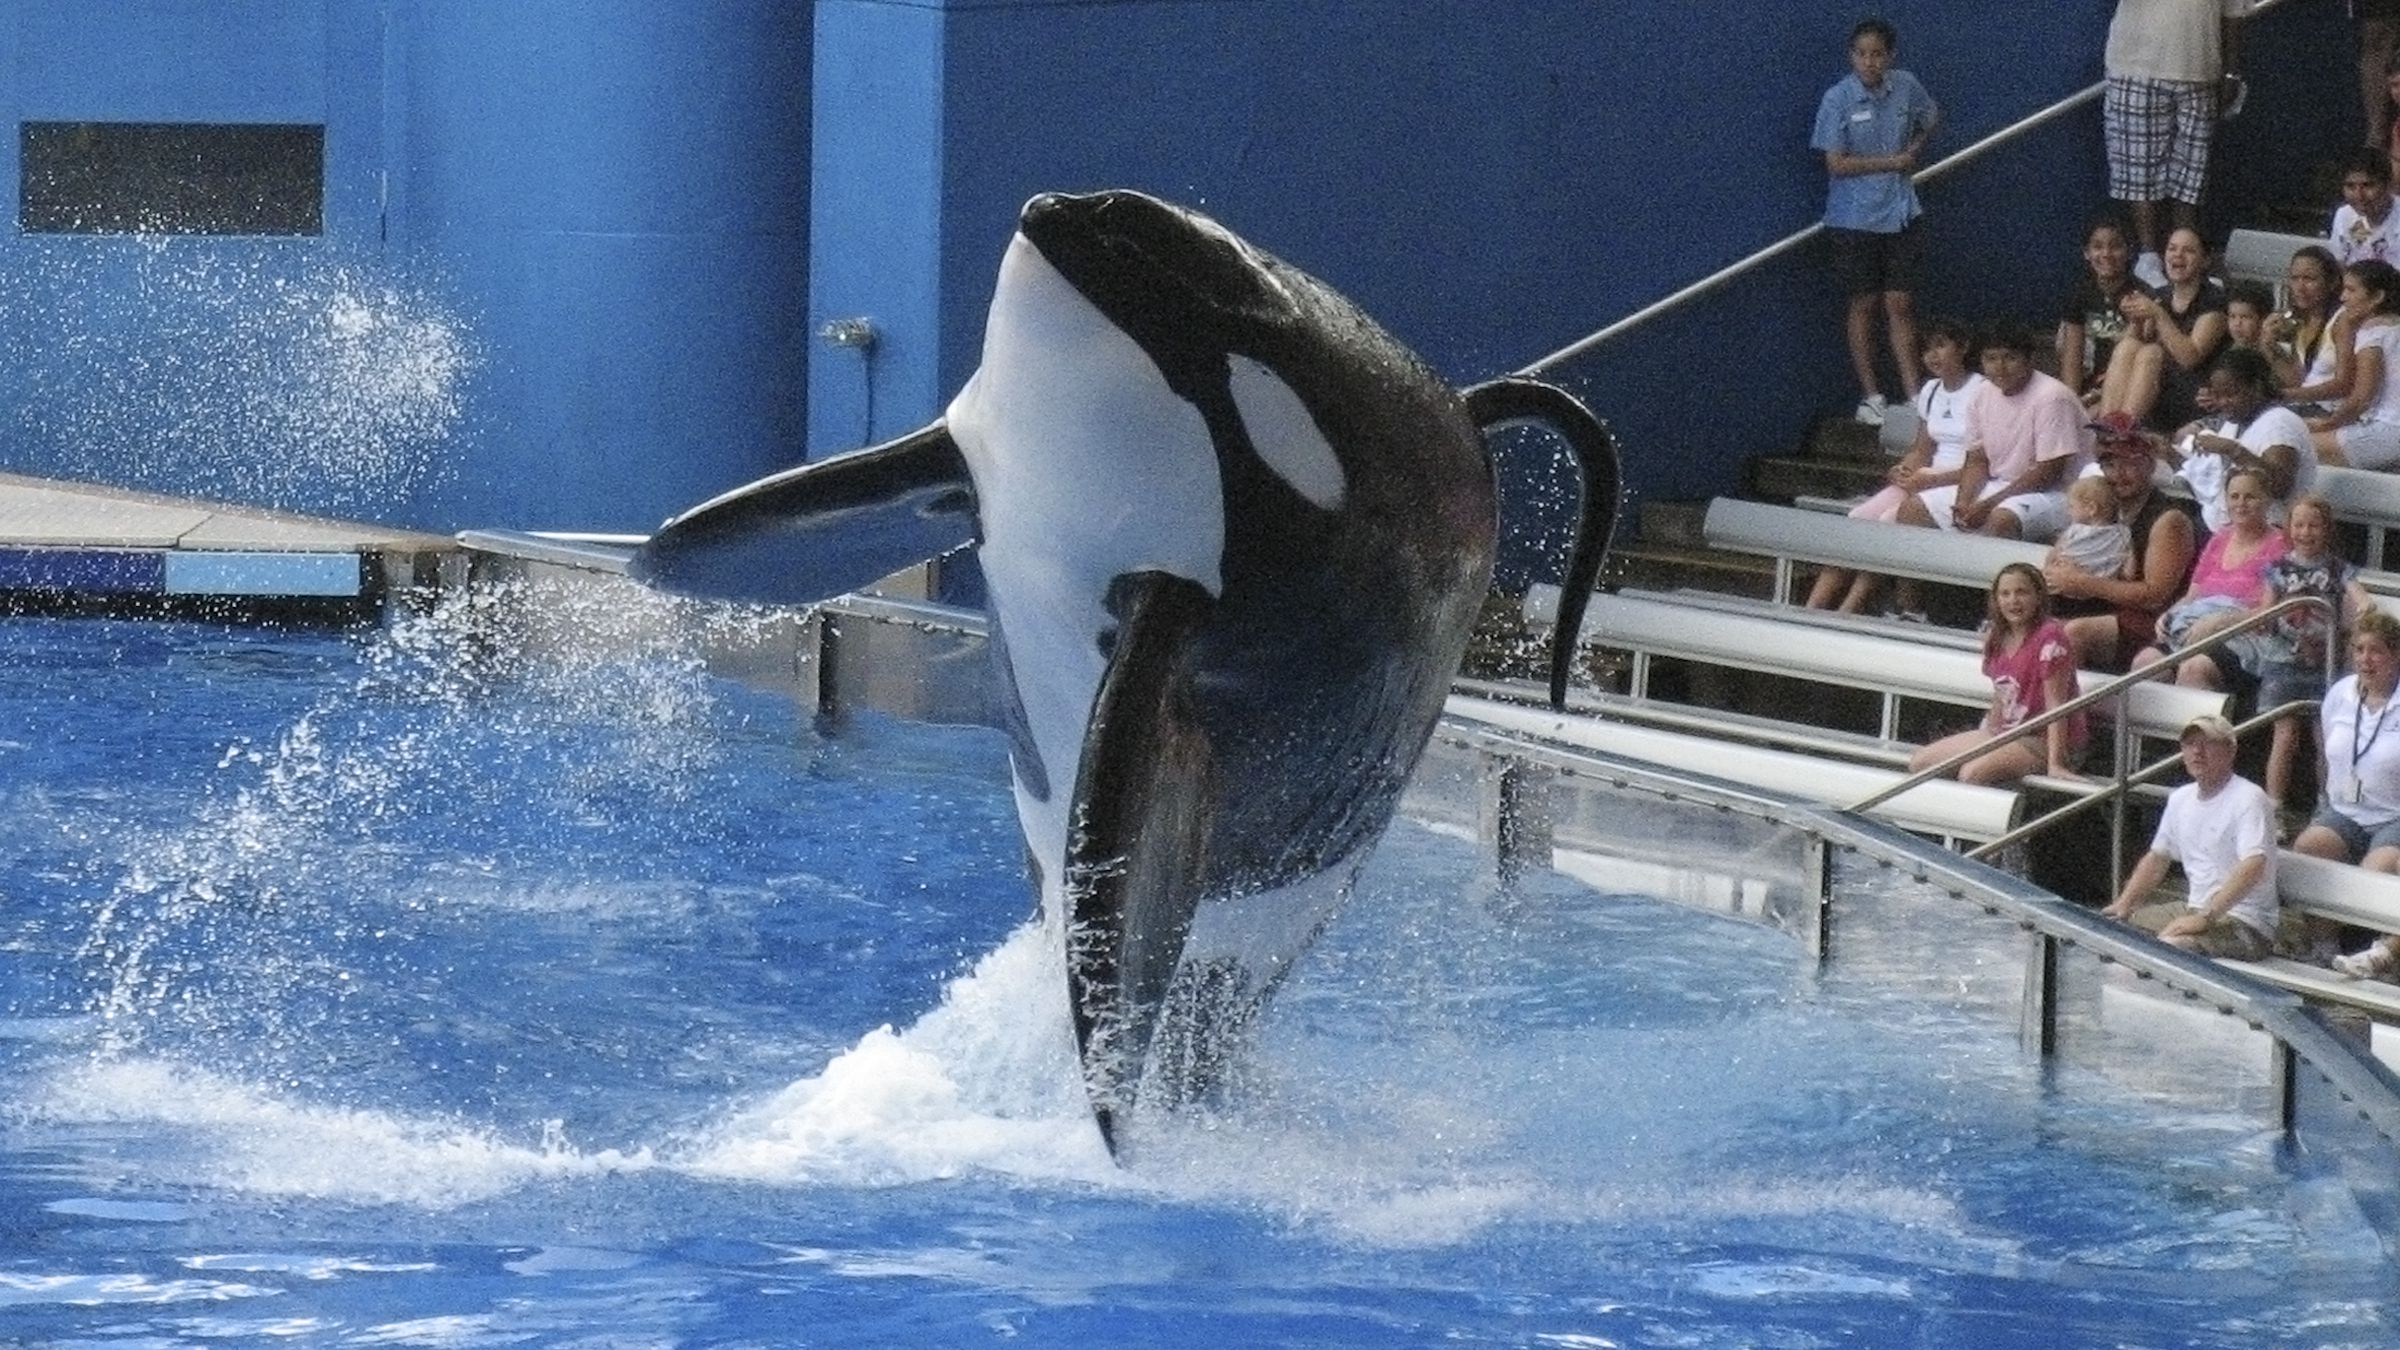 Tillikum, a killer whale at SeaWorld amusement park, performs during the show Believe, in Orlando